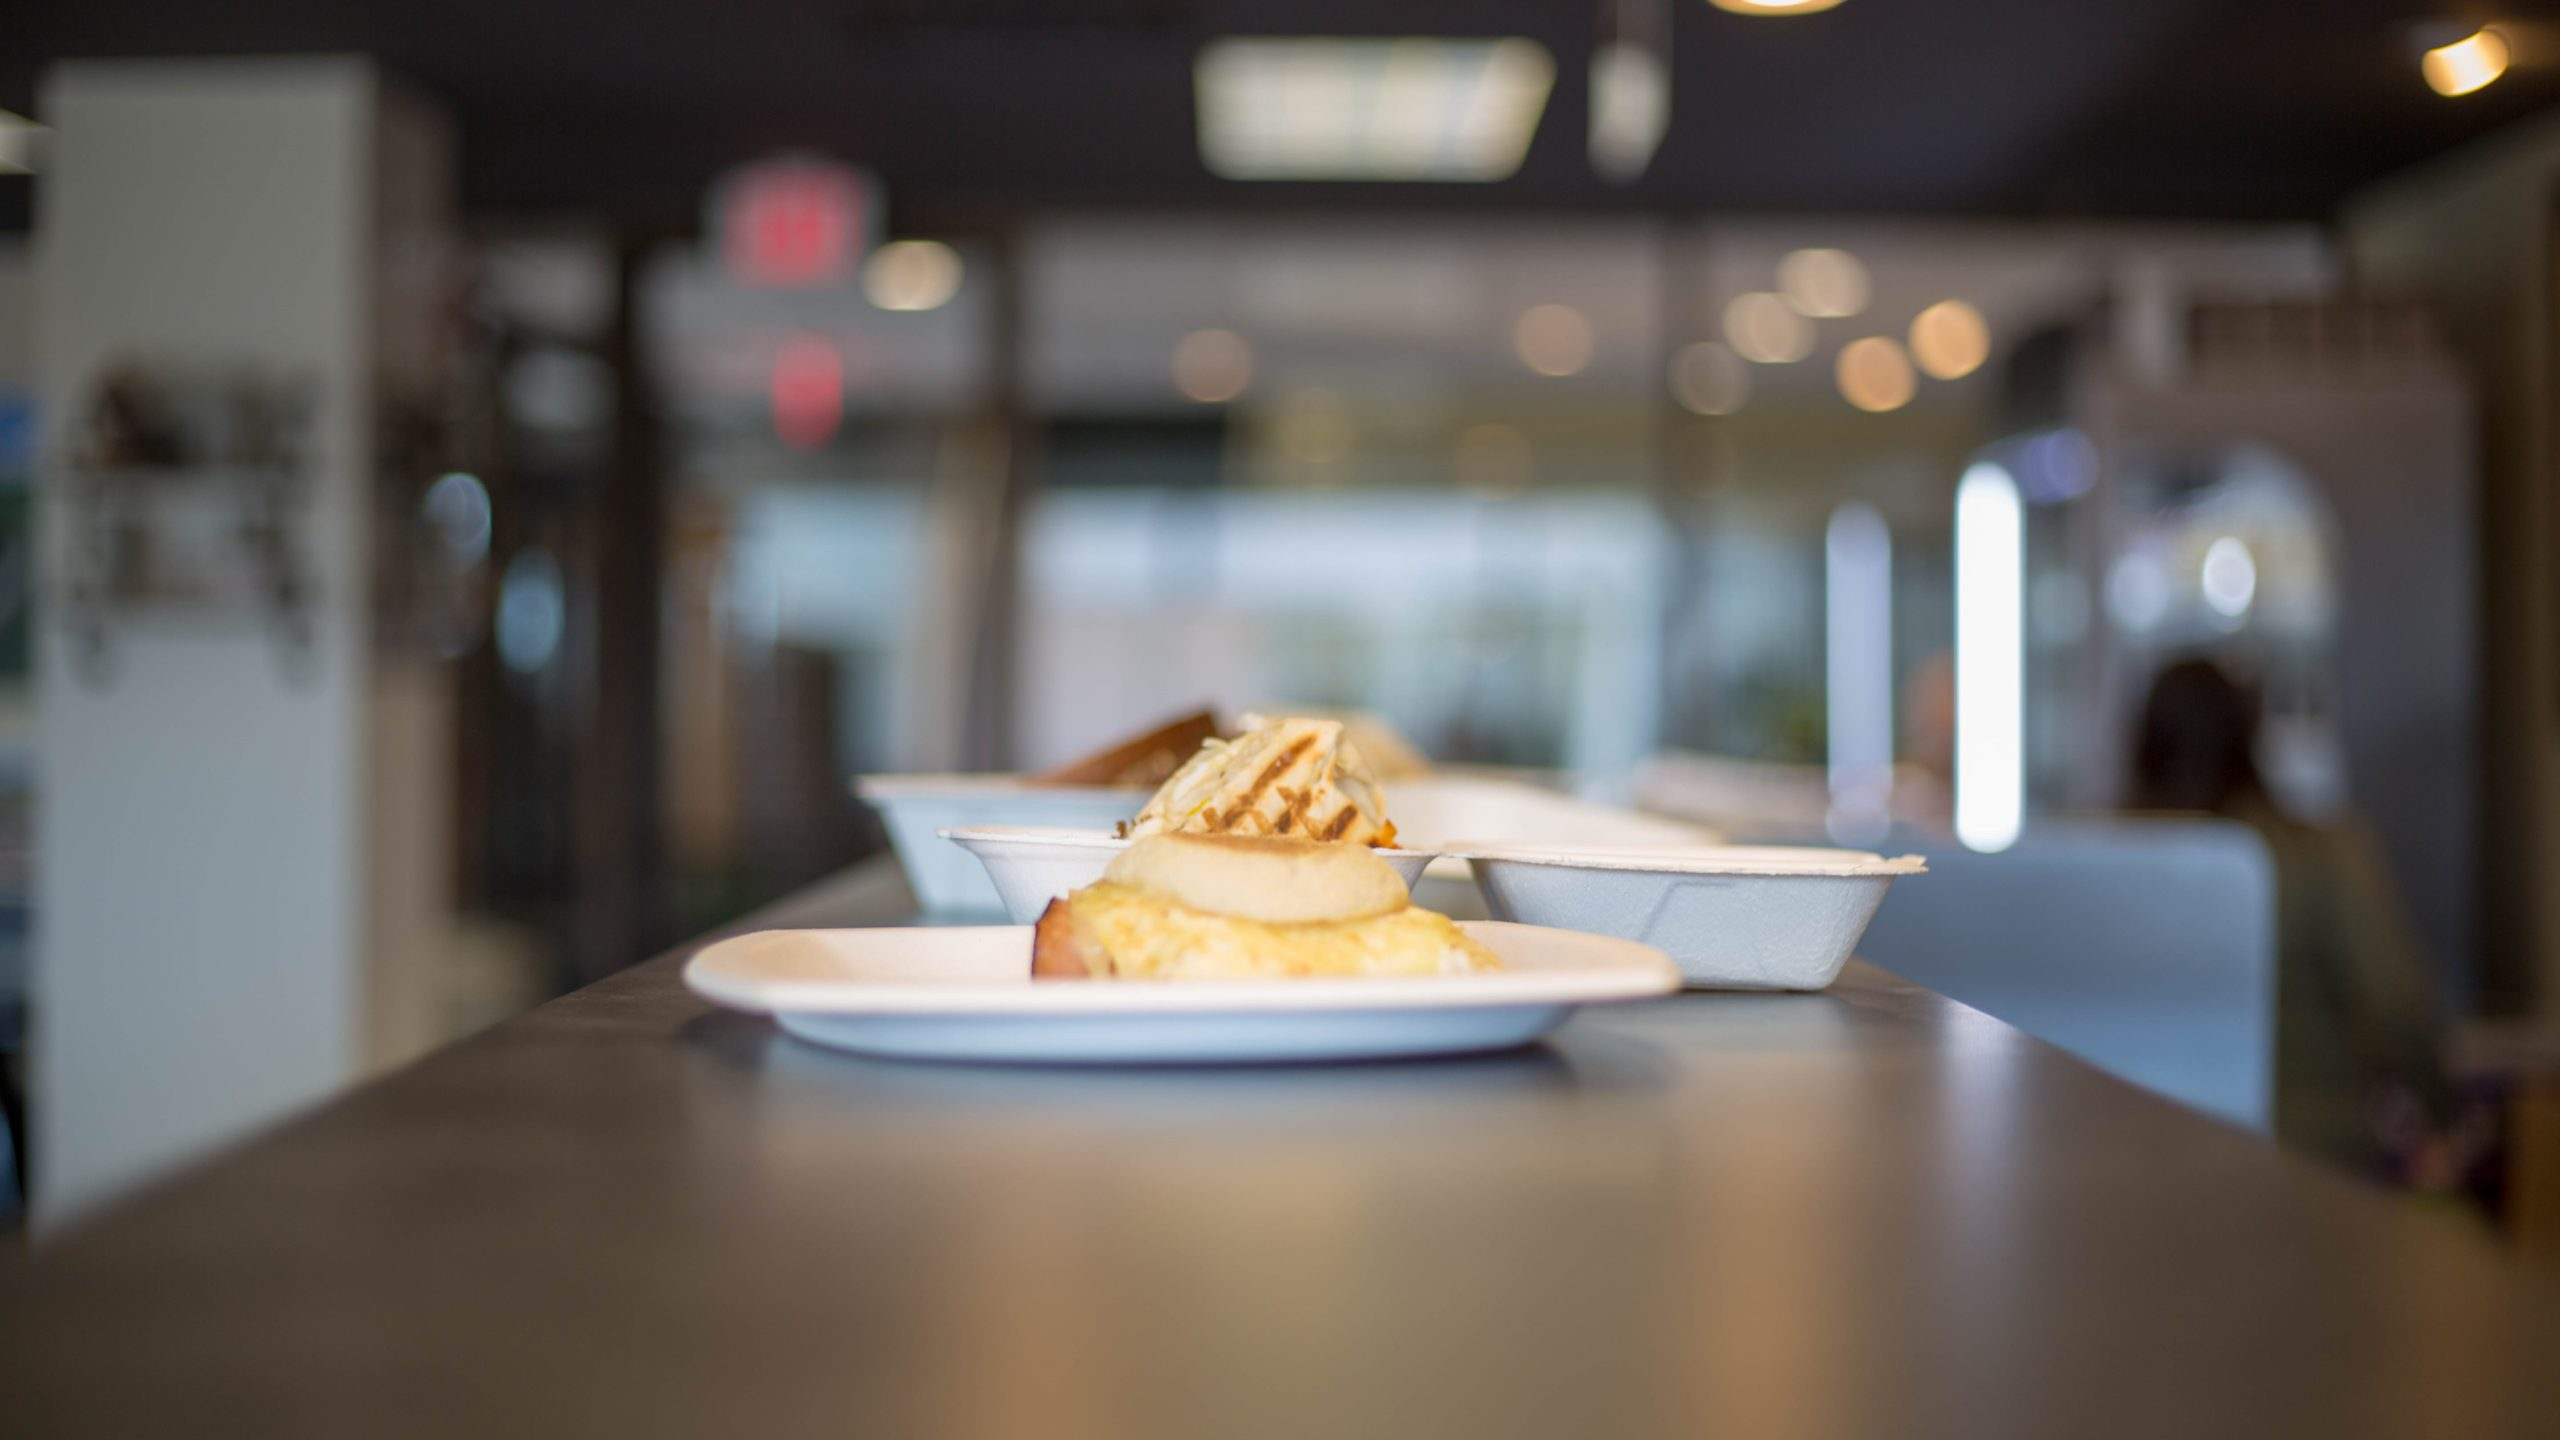 a slice of pie on a plate with a blurred background of a restaurant